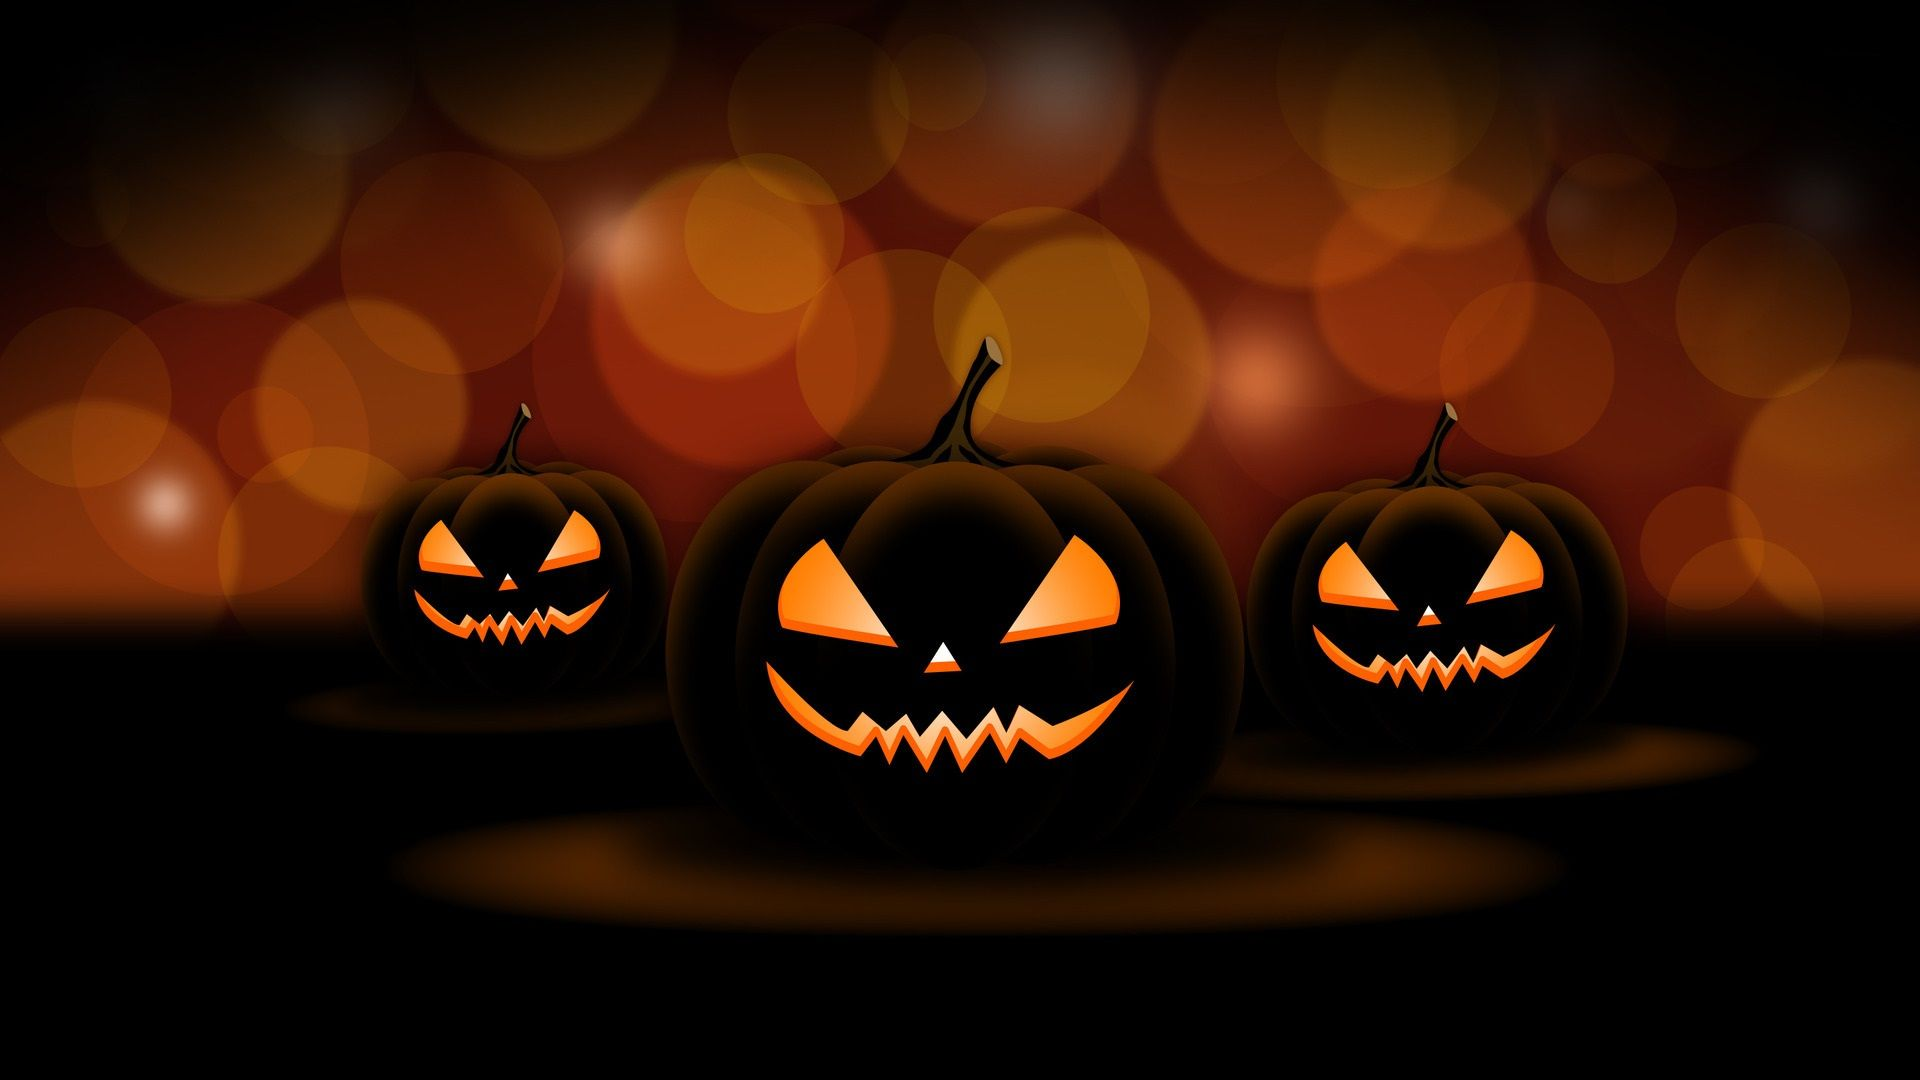 Happy Halloween Day To You Wallsfield Com Free Hd Wallpapers Happy Halloween Pictures Halloween Pictures Scary Halloween Pumpkins